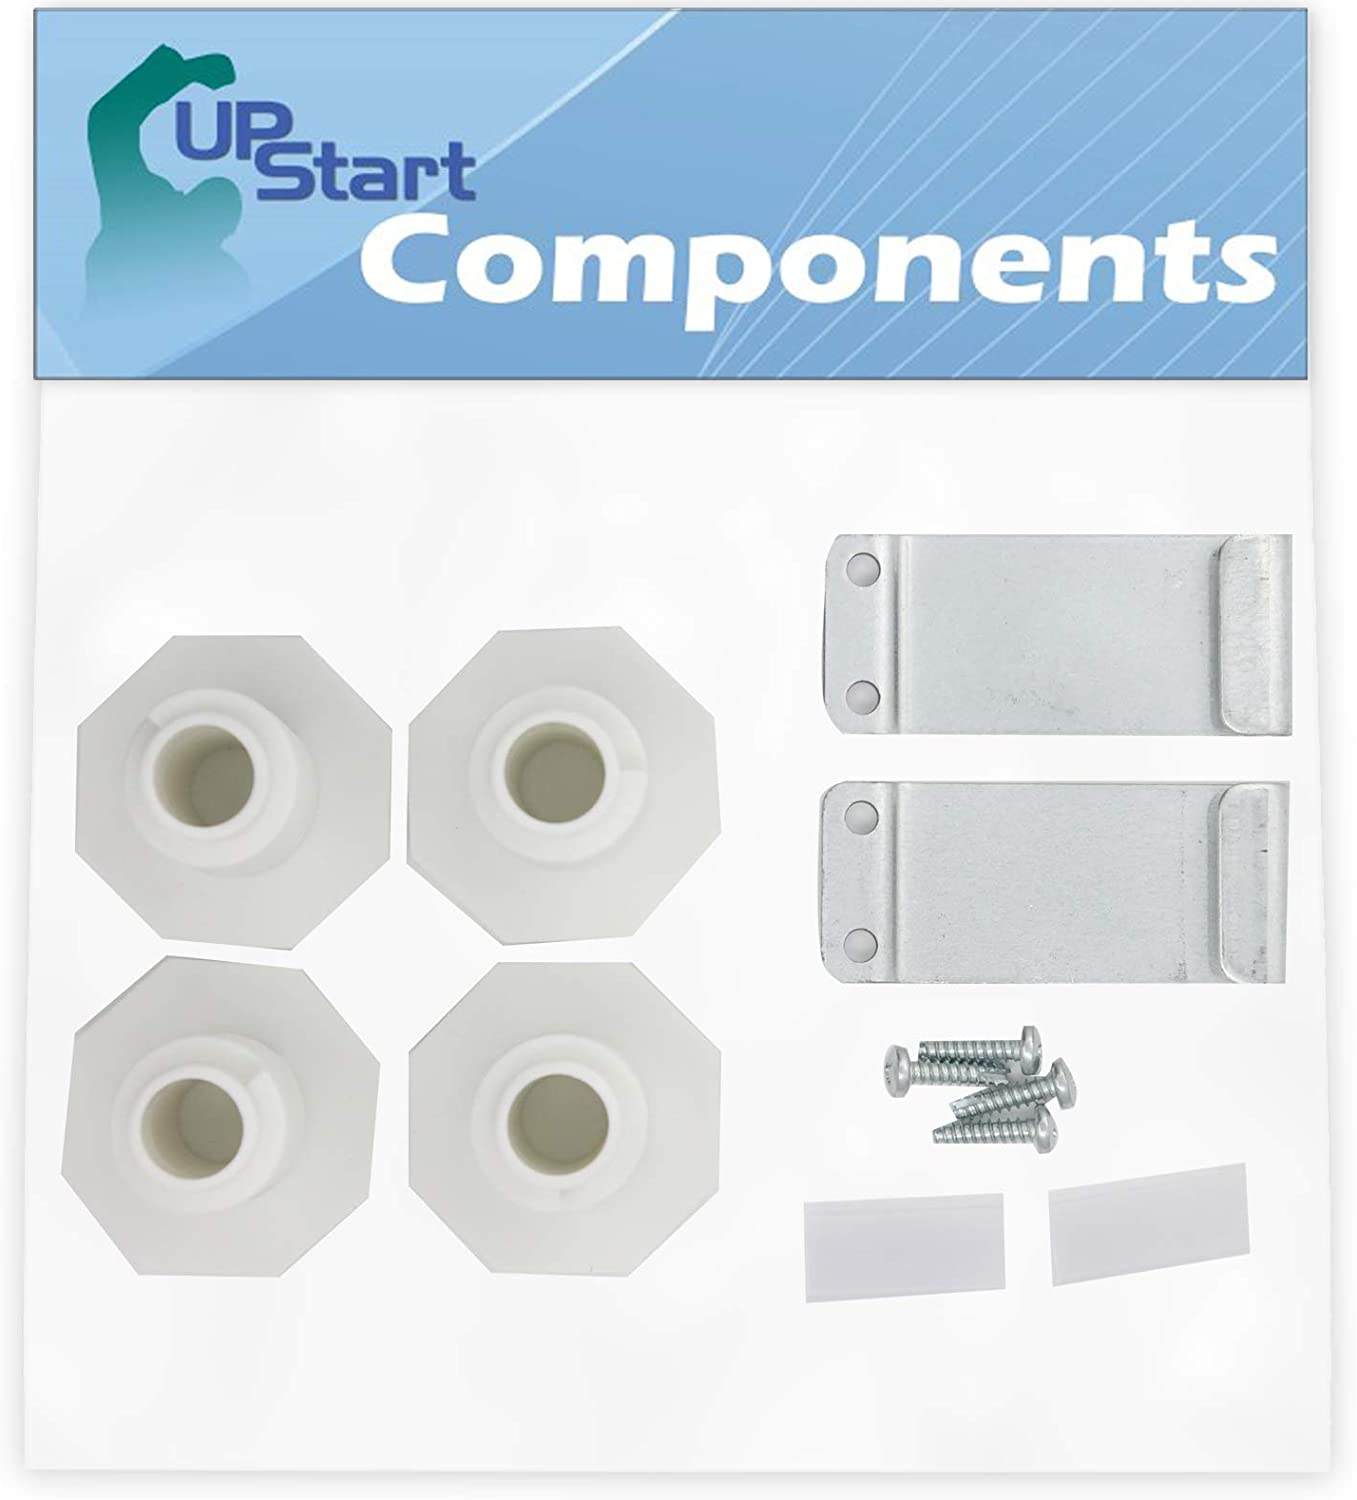 W10869845 Stacking Kit Replacement for Kenmore/Sears 1105902800 Washer - Compatible with W10869845 Stack Kit for Standard & Long Vent Dryer - UpStart Components Brand